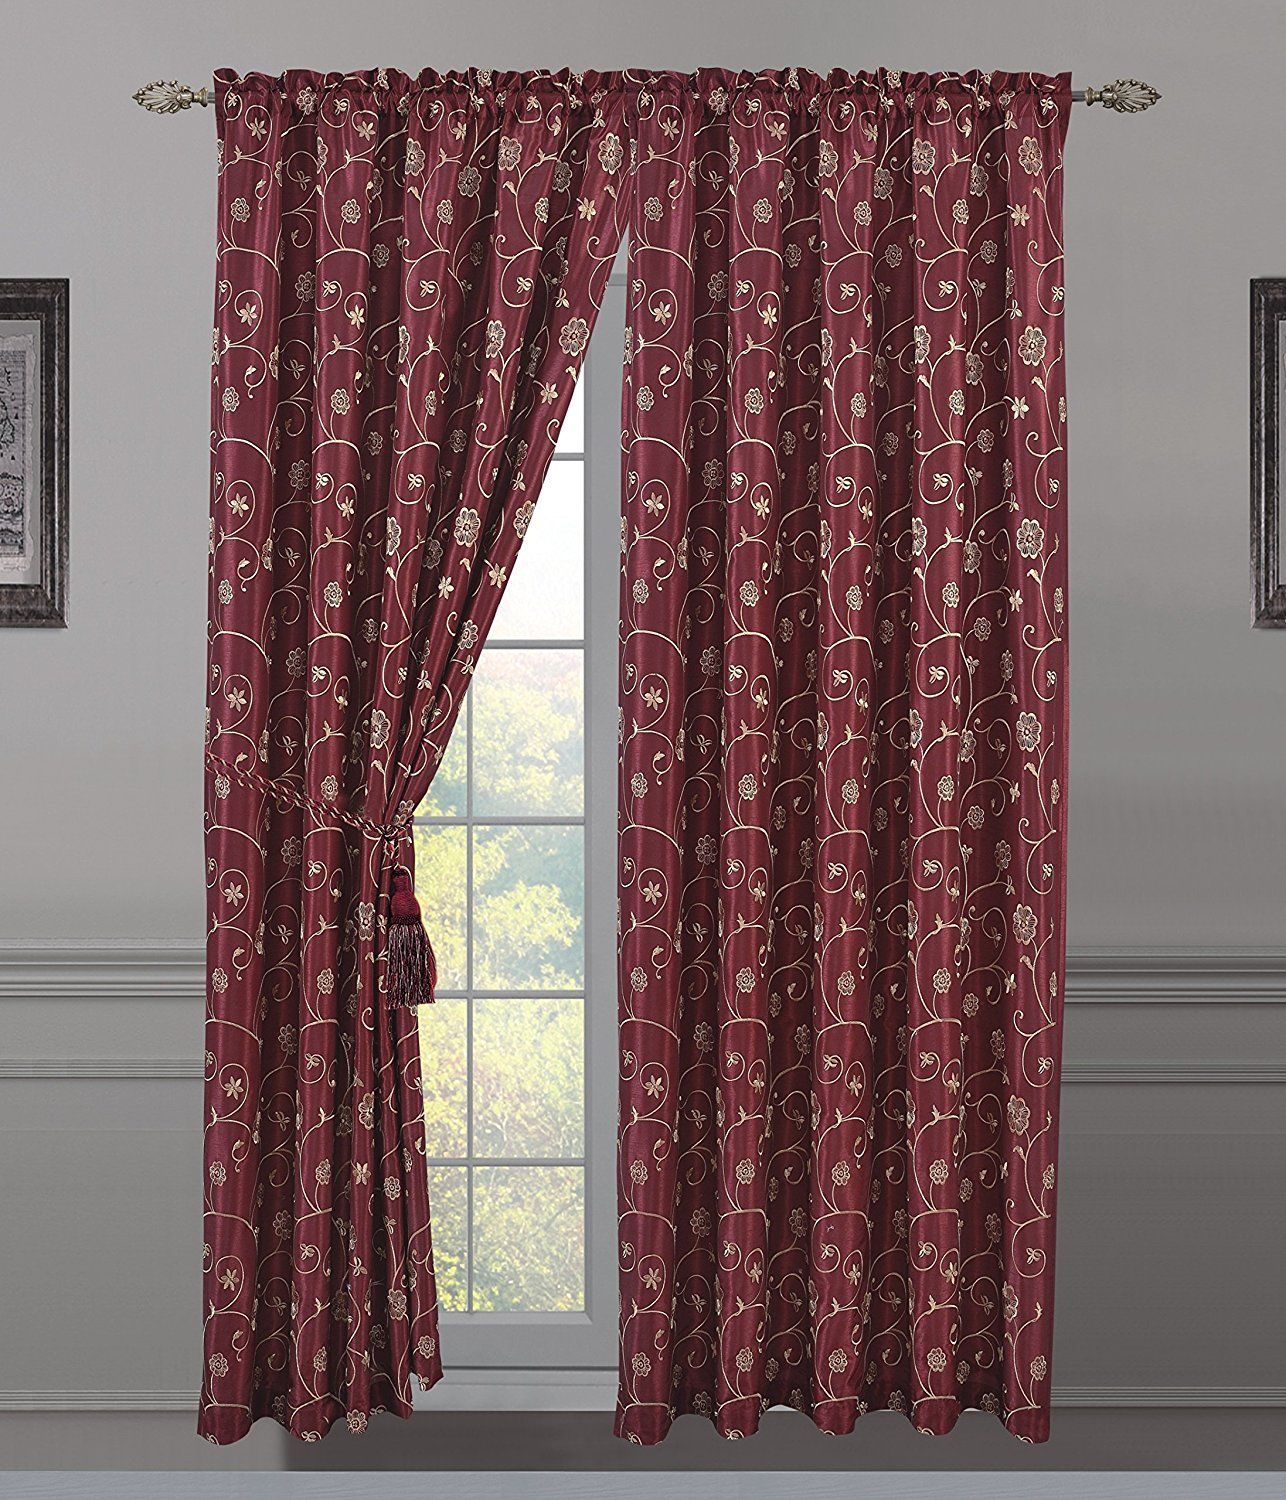 All American Collection Cute Curtains   Shower curtain sets, Shower ...